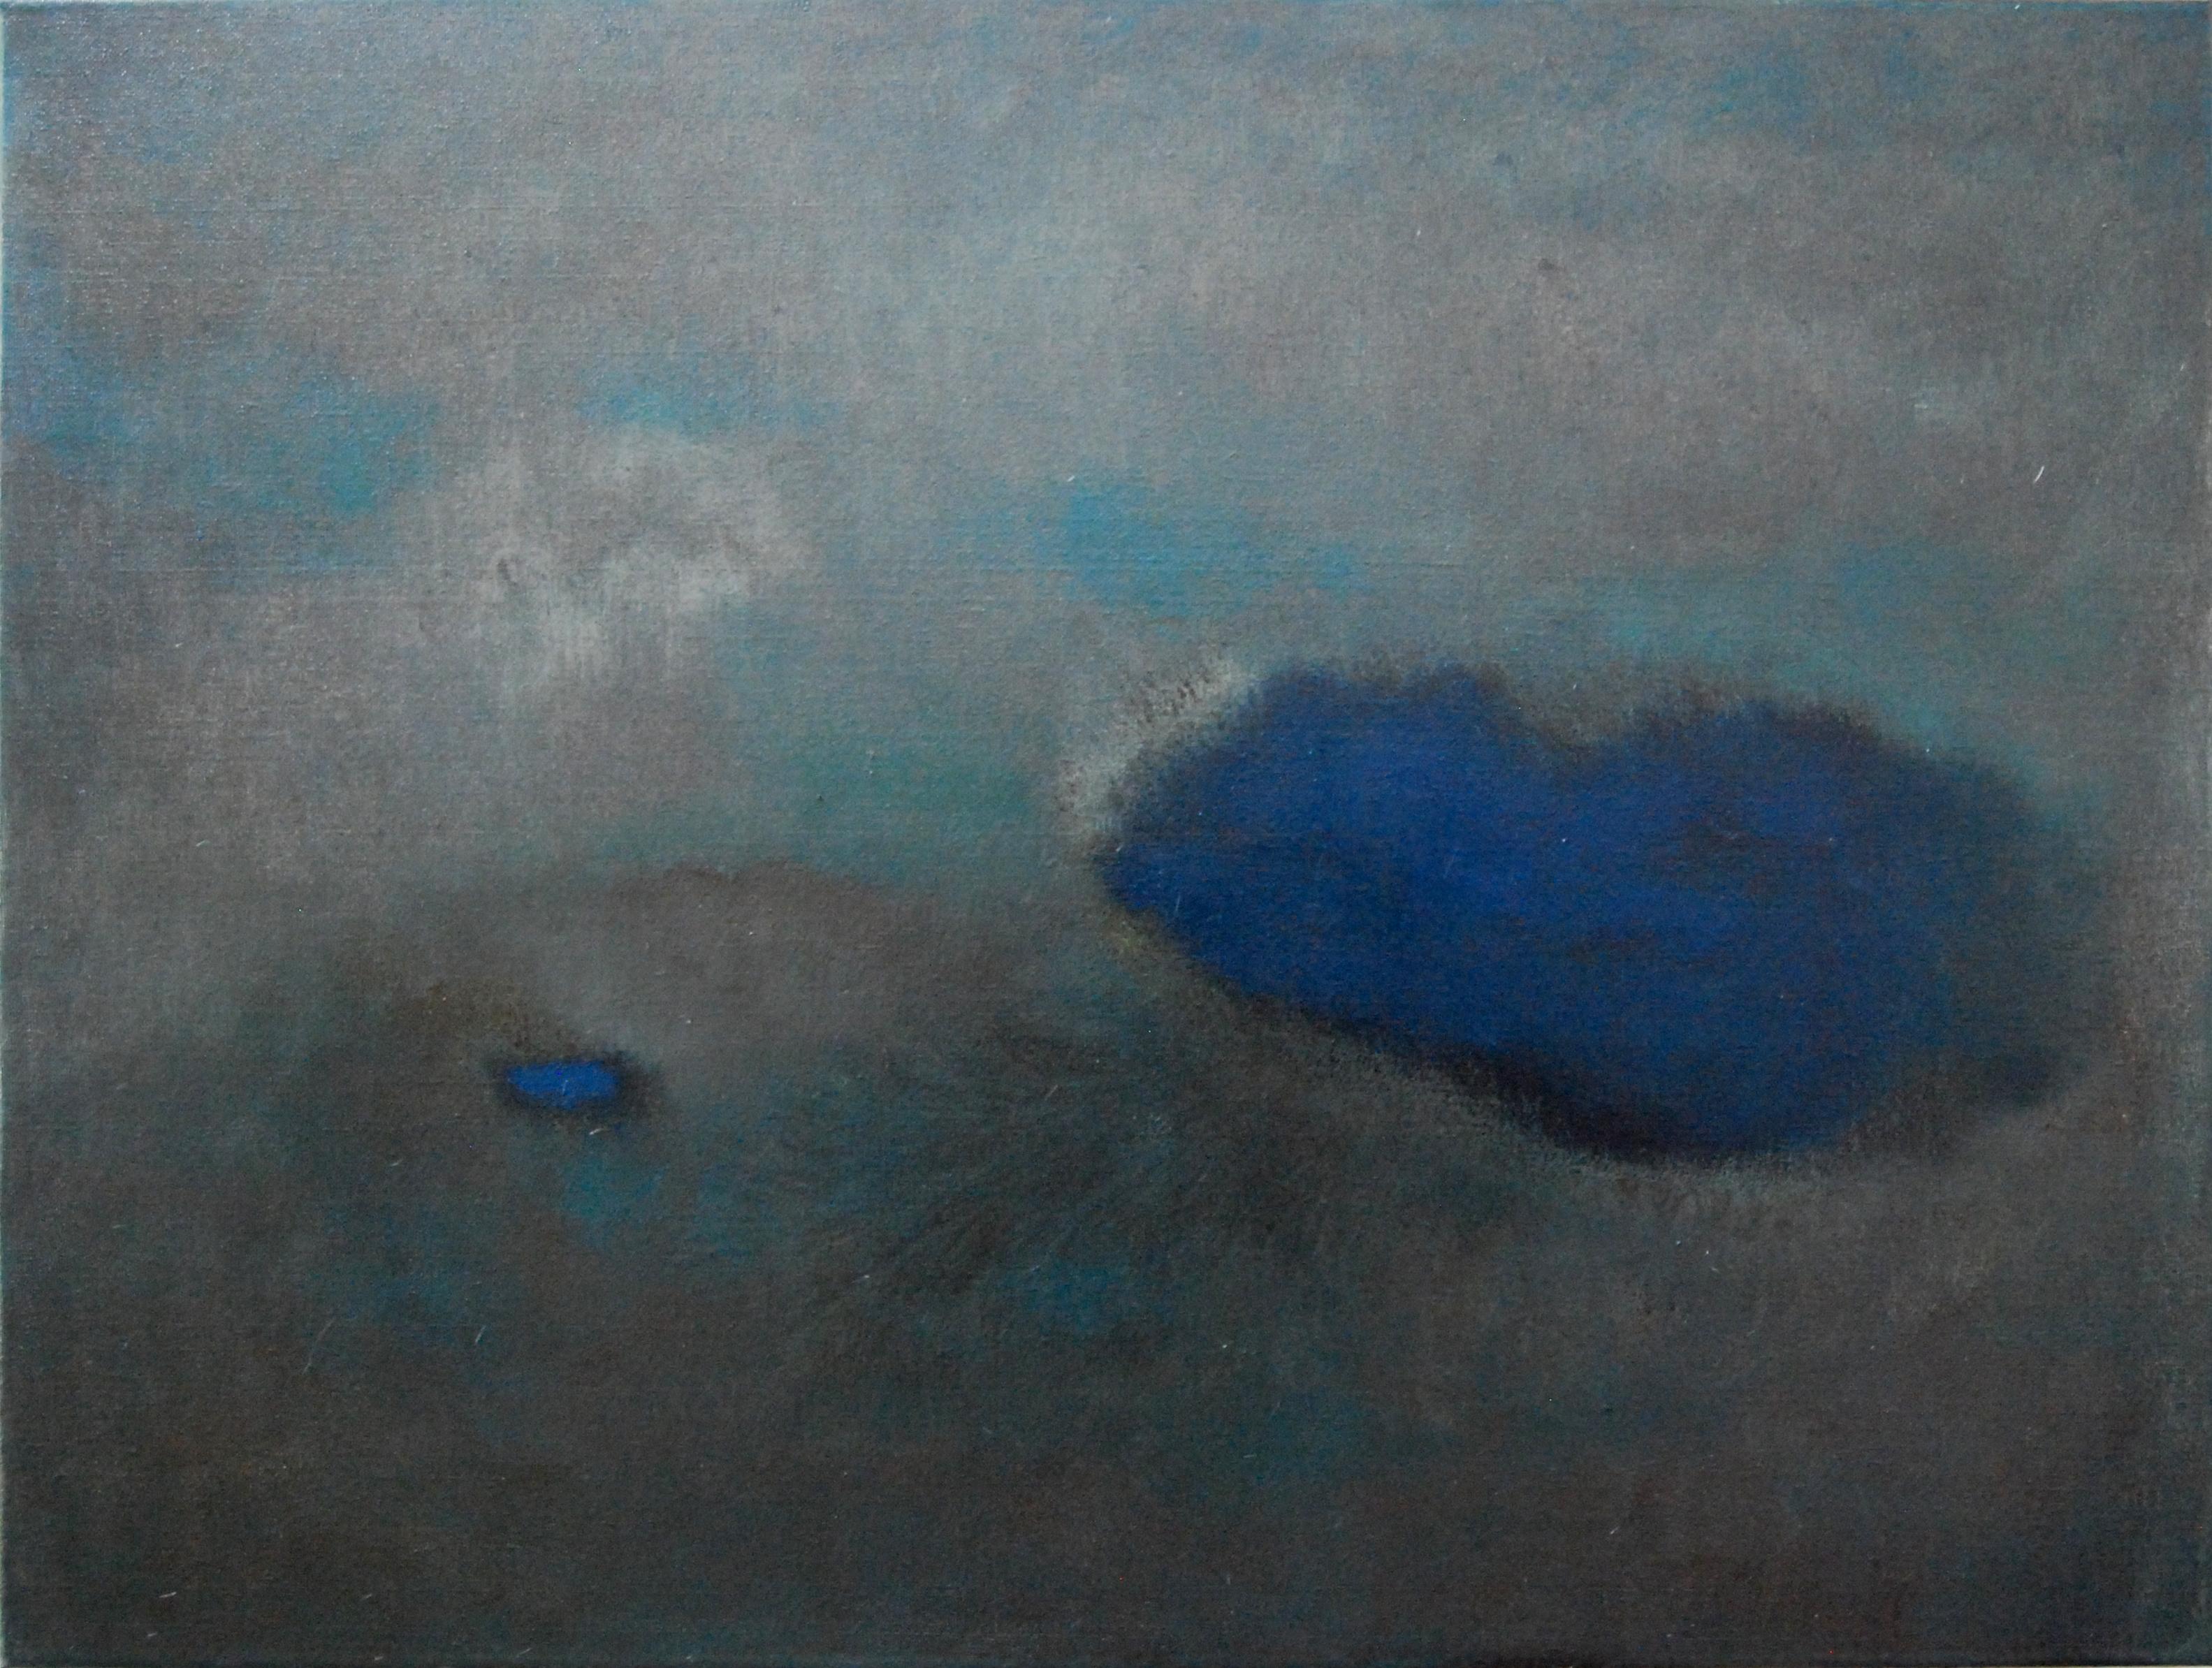 <em>You & me VIII</em>. 2010. Oil on canvas. 80x100cm